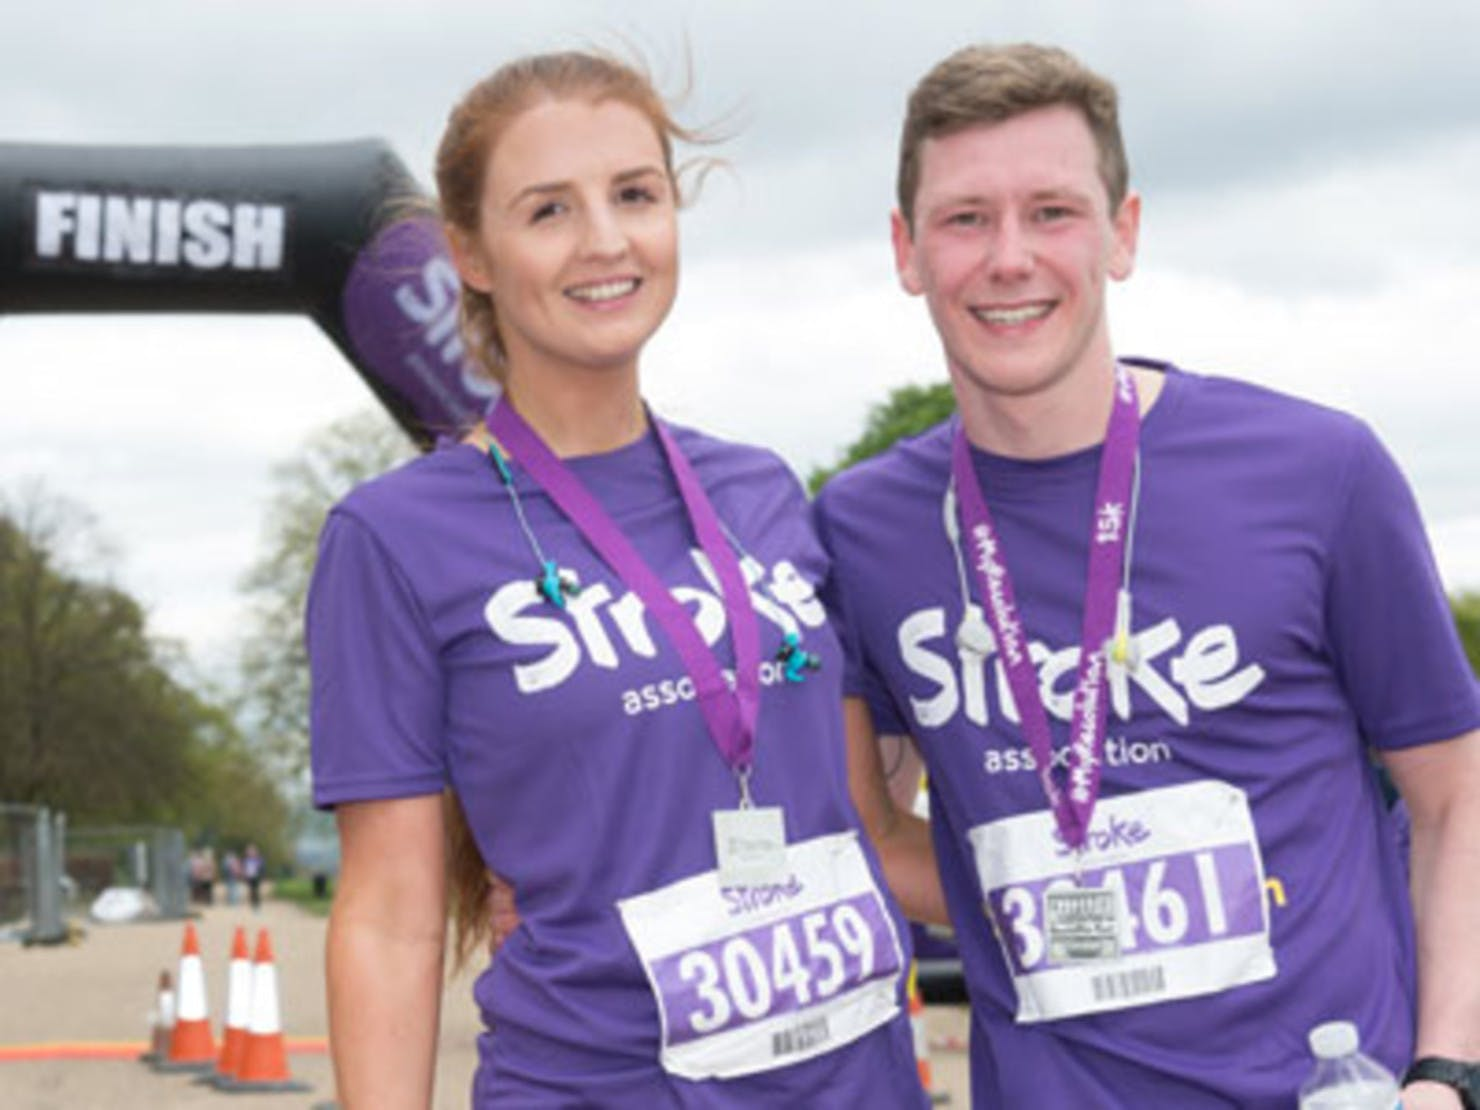 A man and a woman standing at the finish line of a race, both wearing purple t-shirts and medals.